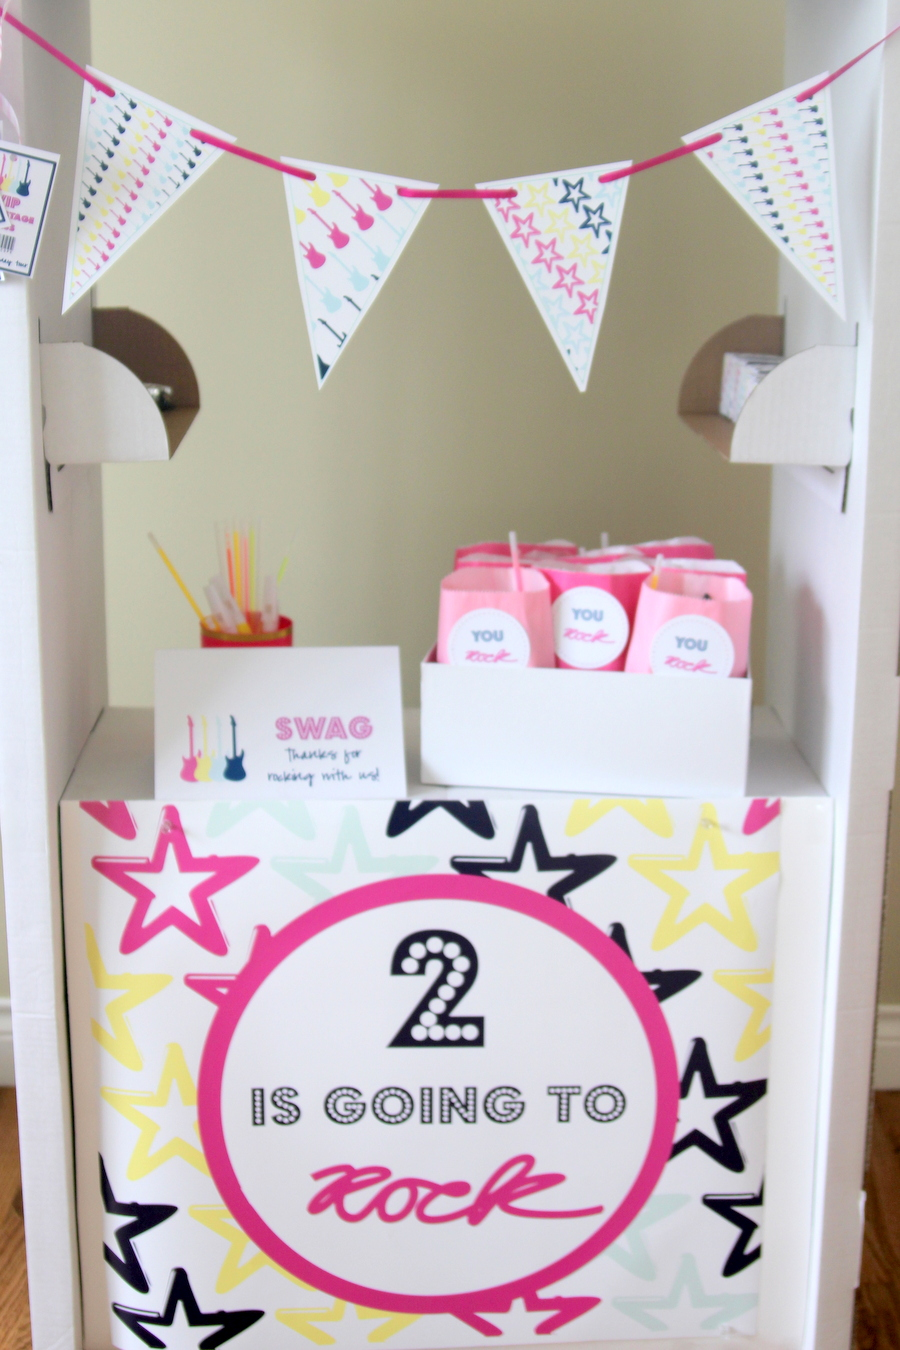 Time to party like a rock star! This sweet rock star birthday party includes all sorts of party ideas- like this cute swag booth made from a $15 IKEA cardboard market!